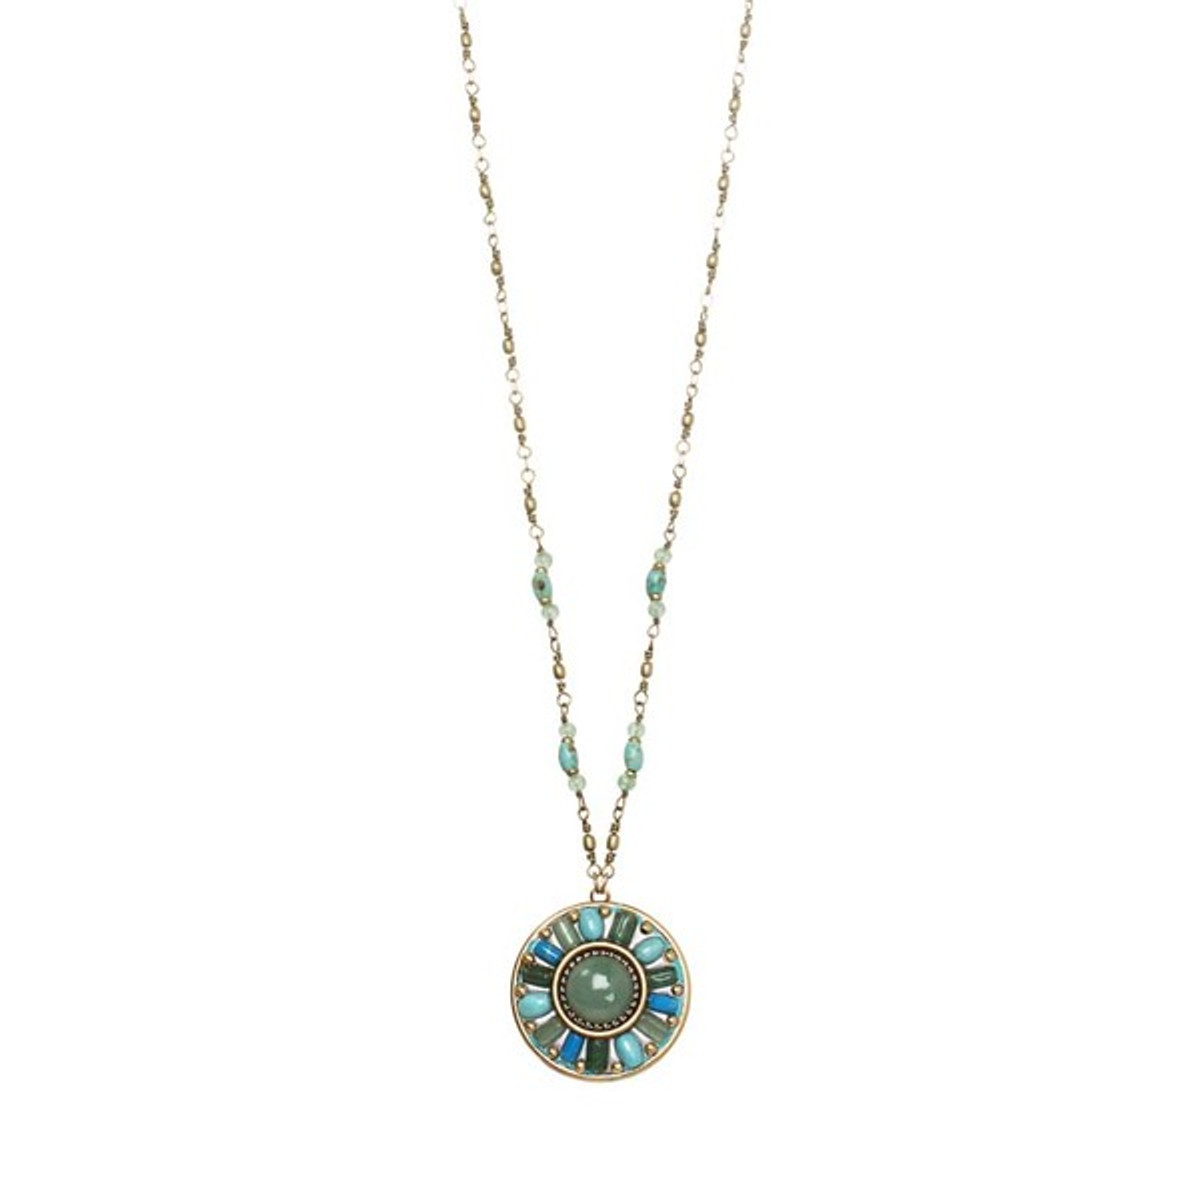 Michal Golan Jewelry - Nile Necklace